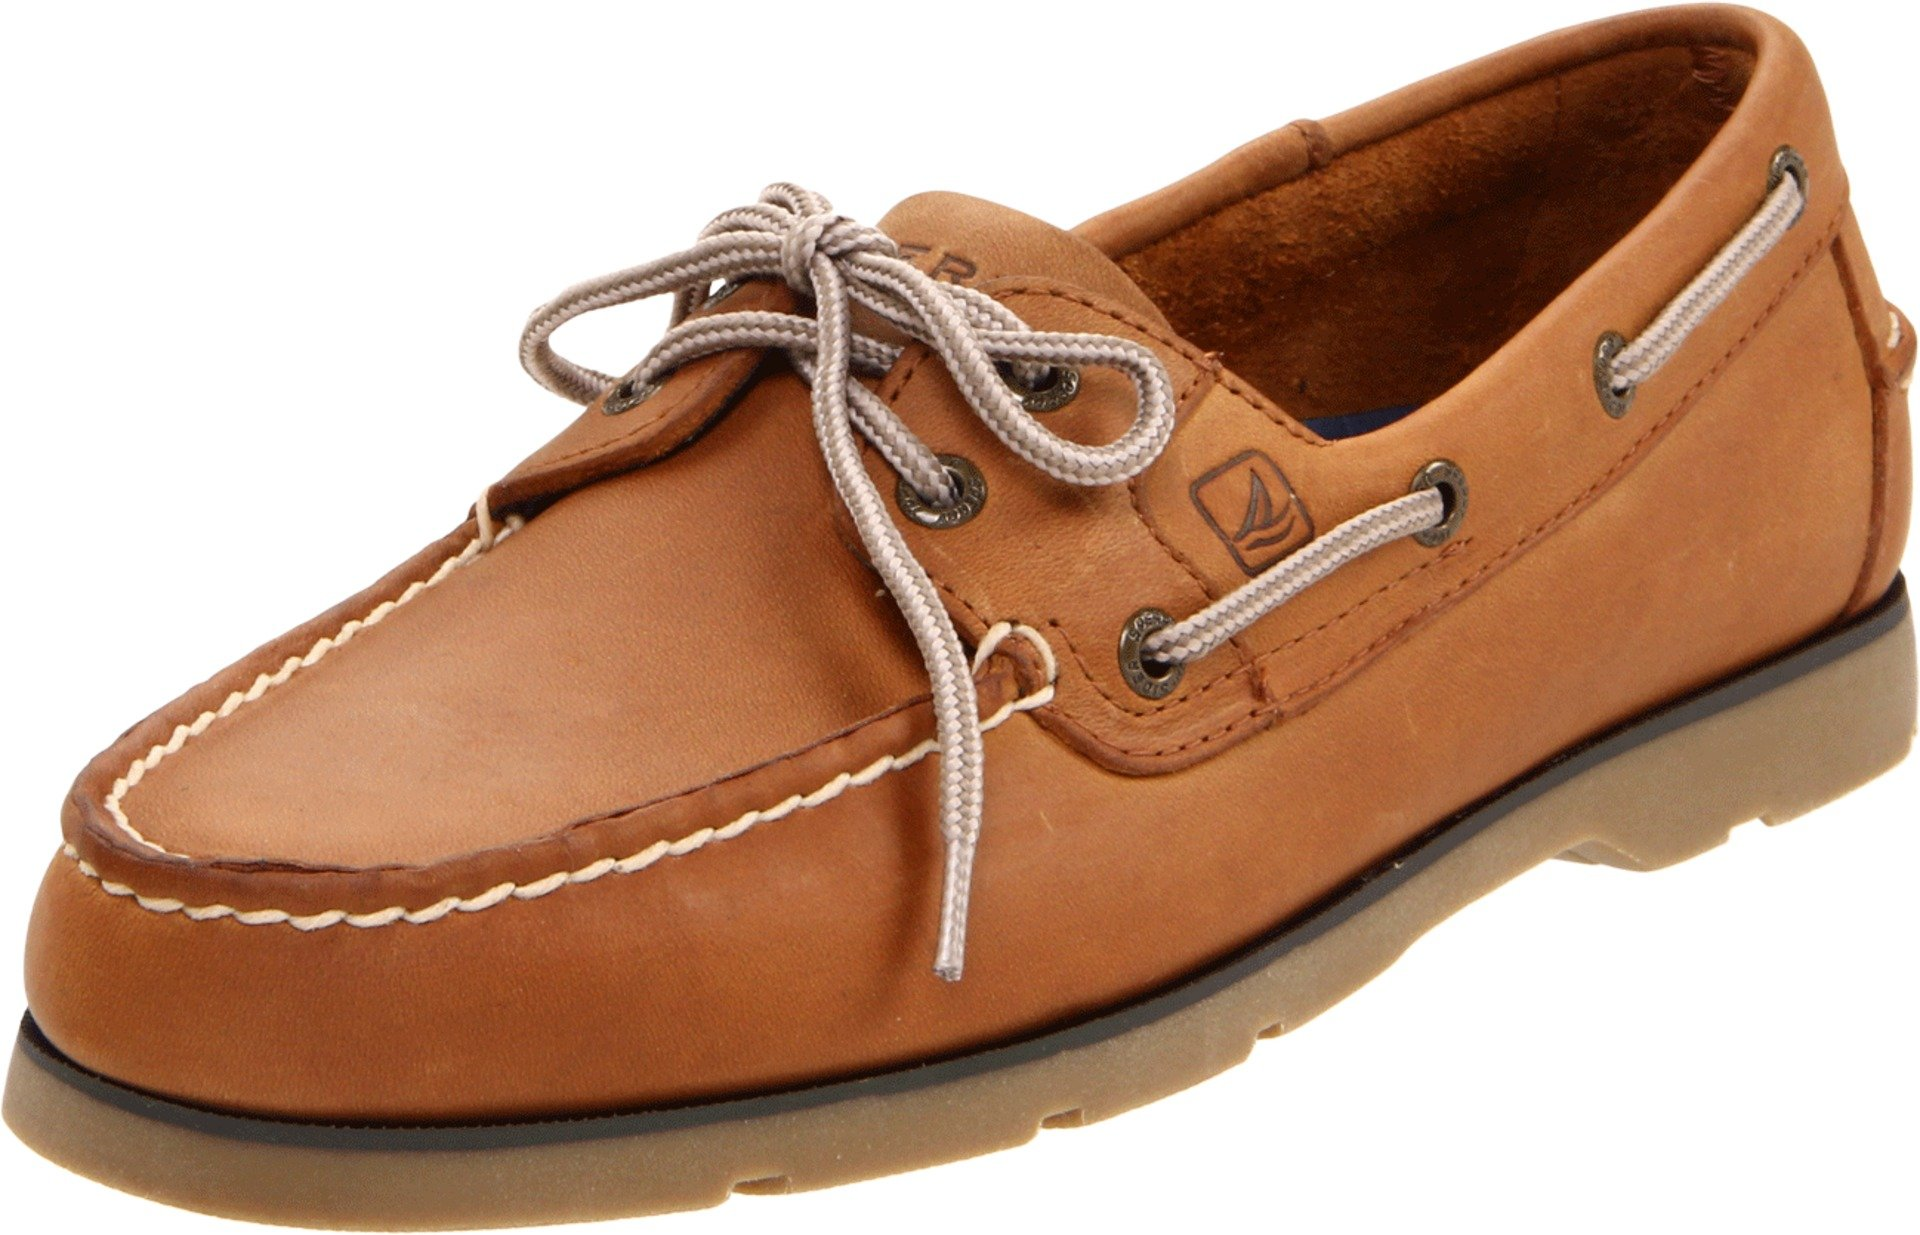 Sperry Top-Sider Men's Leeward Boat Shoe, Sahara, 9 Wide US